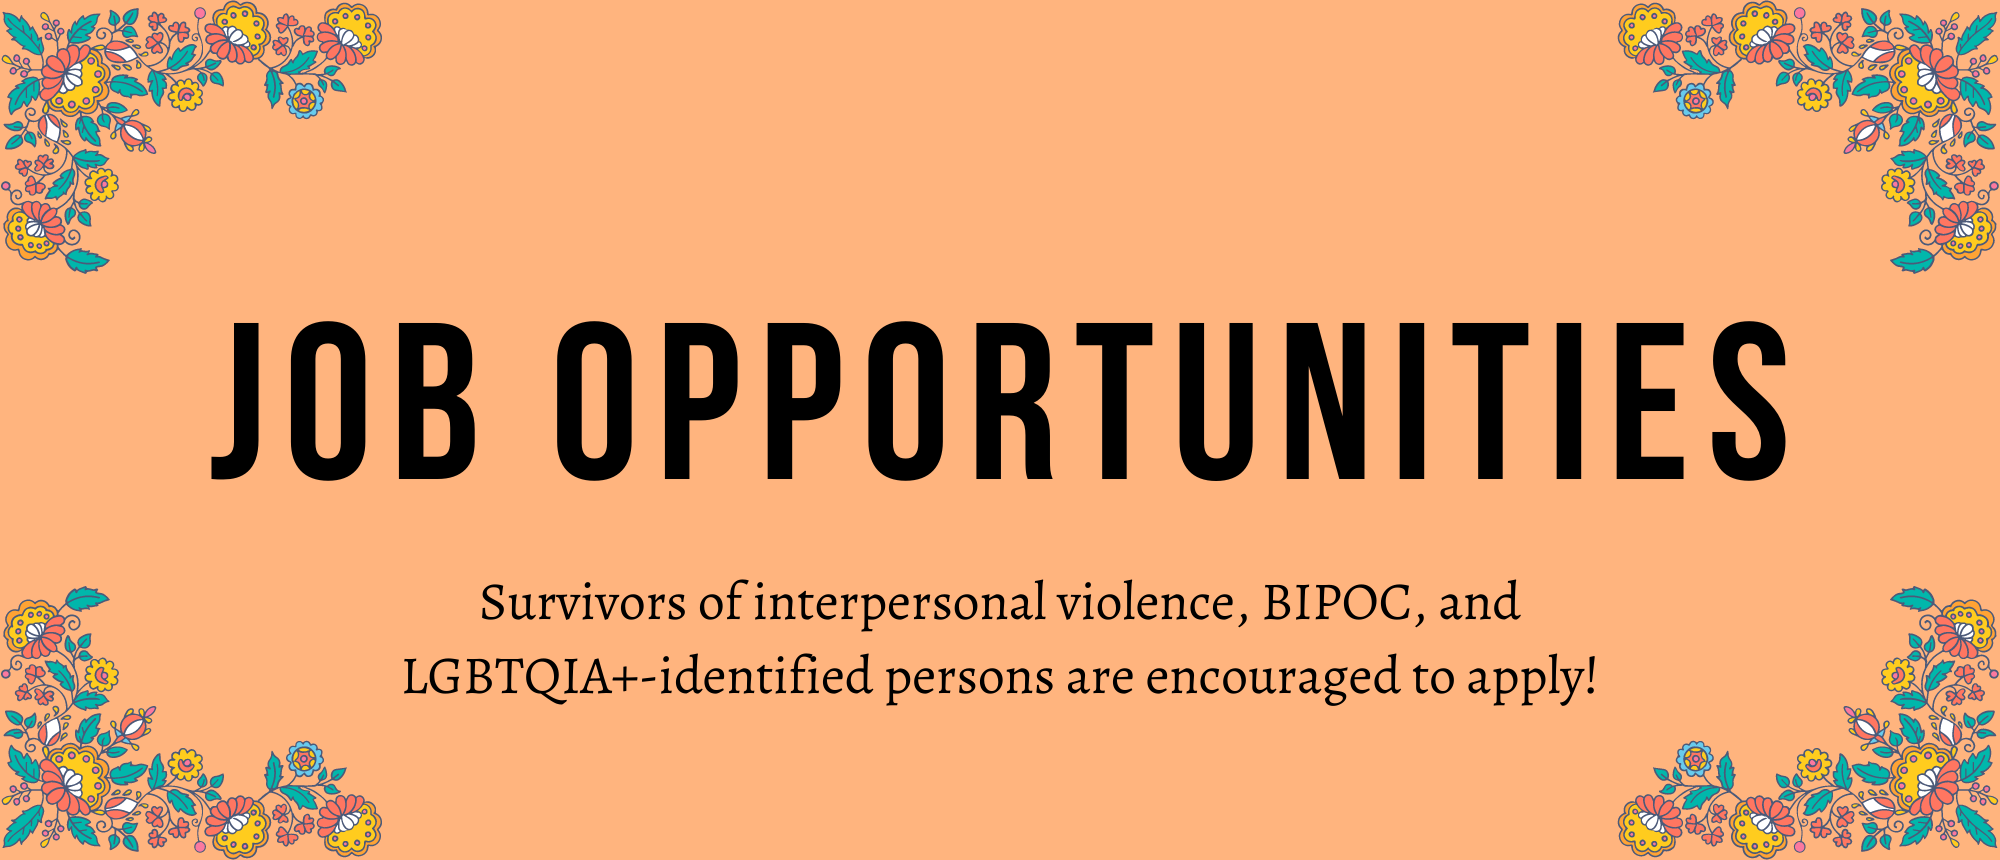 """A peach backgrund with blue and yellow flowers in each corner. In the center in big bold text """"JOB OPPORTUNITIES"""". Underneath """"Survivors of interpersonal violence, BIPOC, and LGBTQIA+-identified persons are encouraged to apply!"""""""